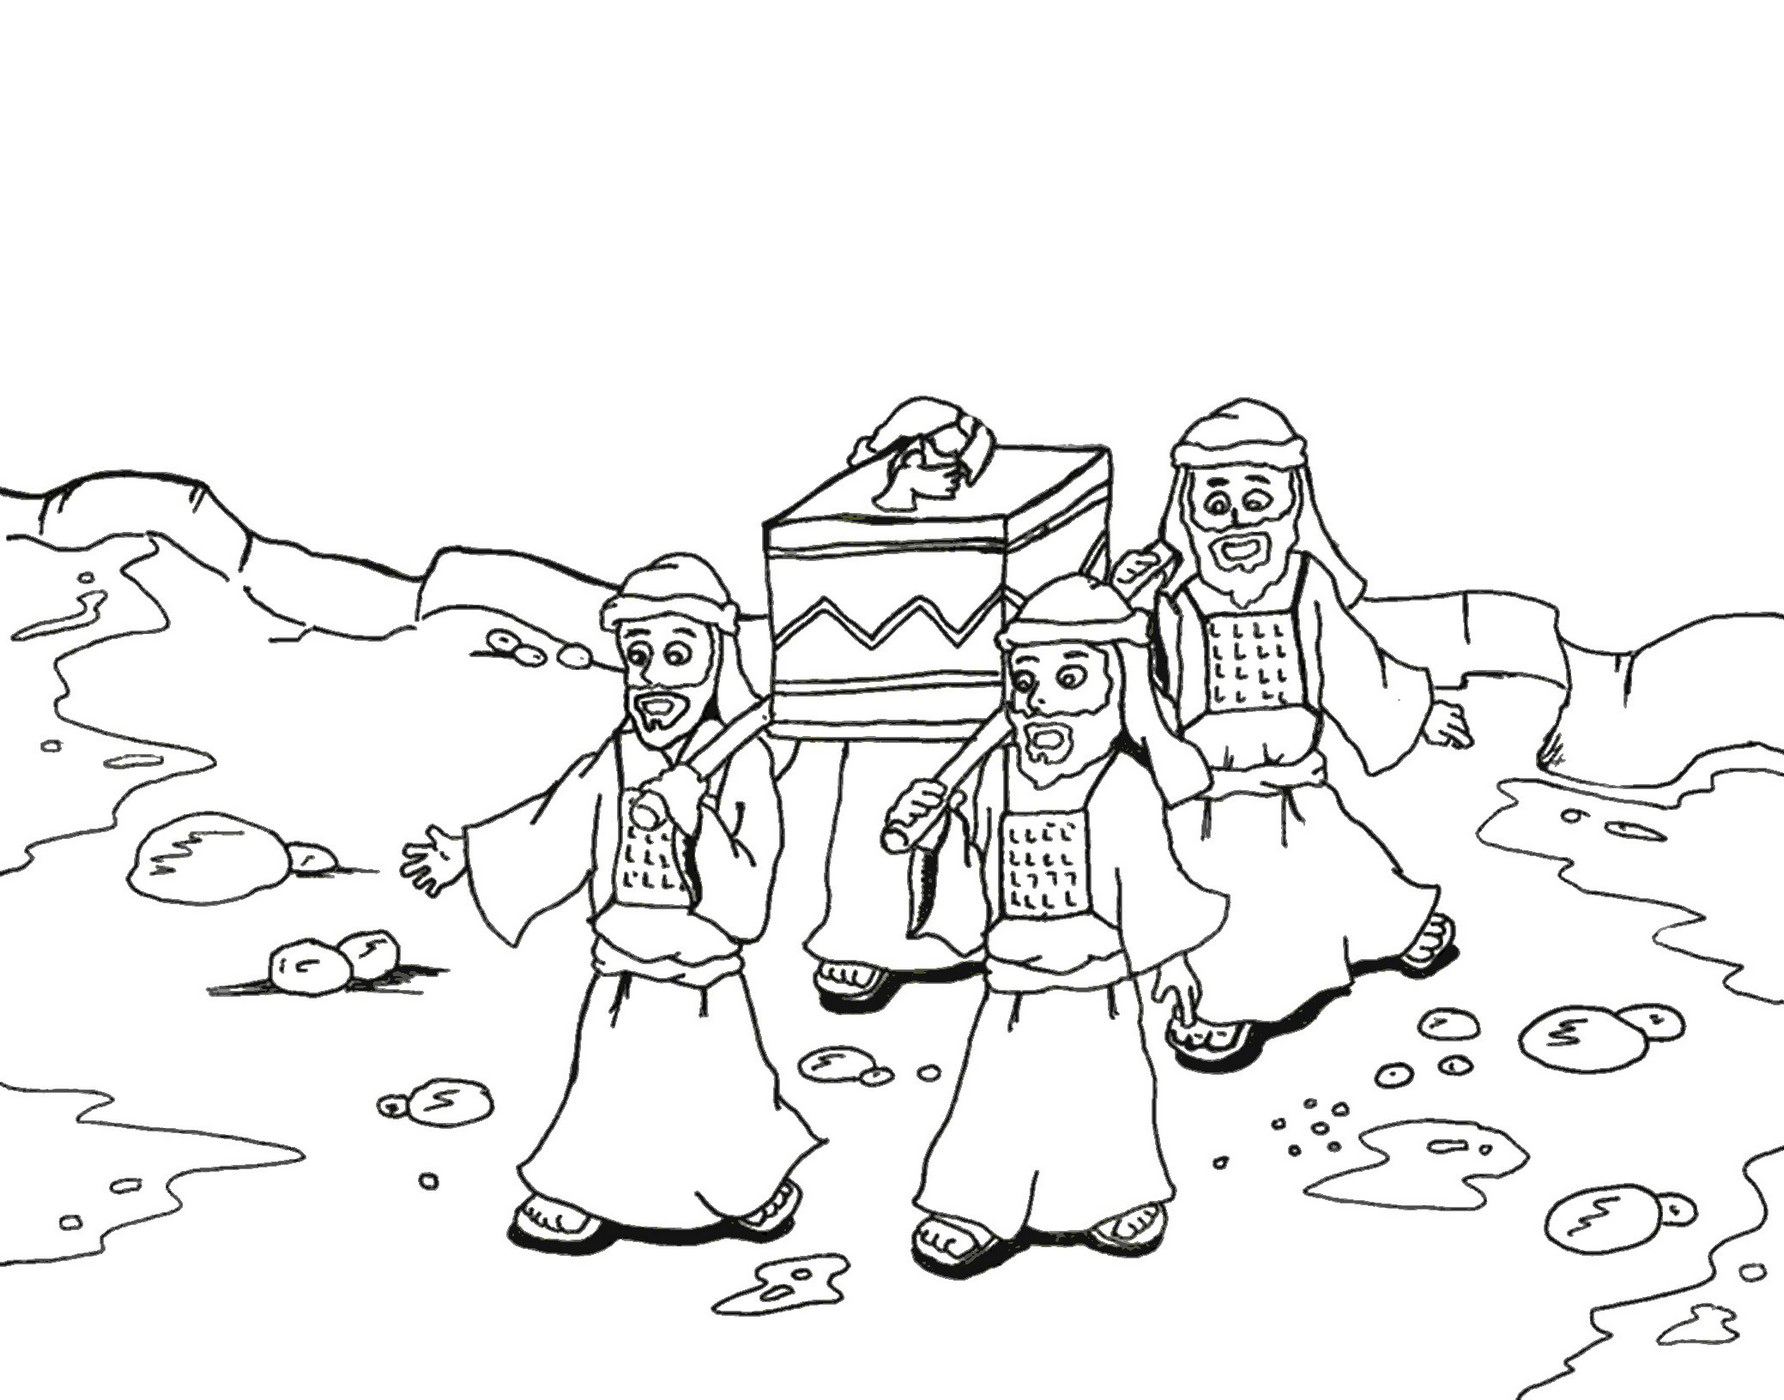 joshua coloring best for kids walls of jericho arc the covenant world book halloween coloring pages Walls Of Jericho Coloring Page